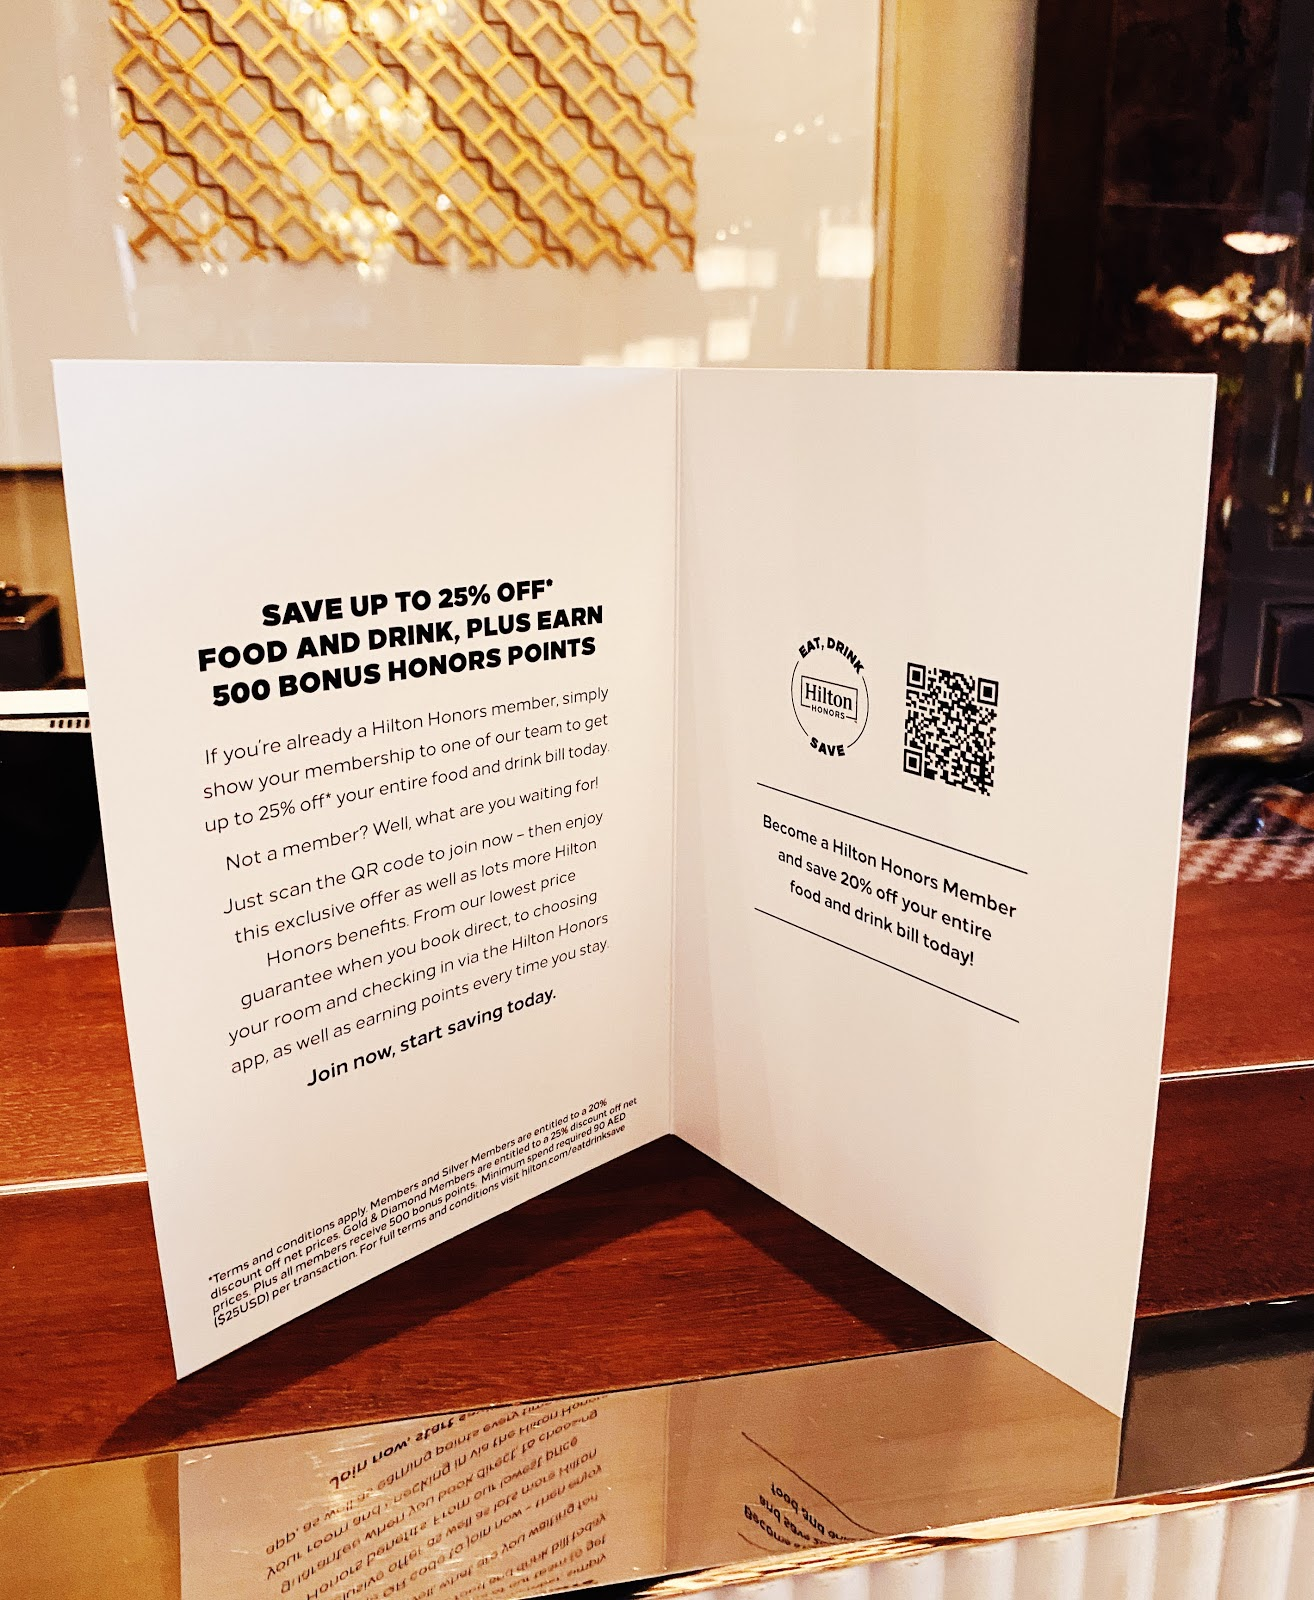 qr code on hilton menu to get a discount